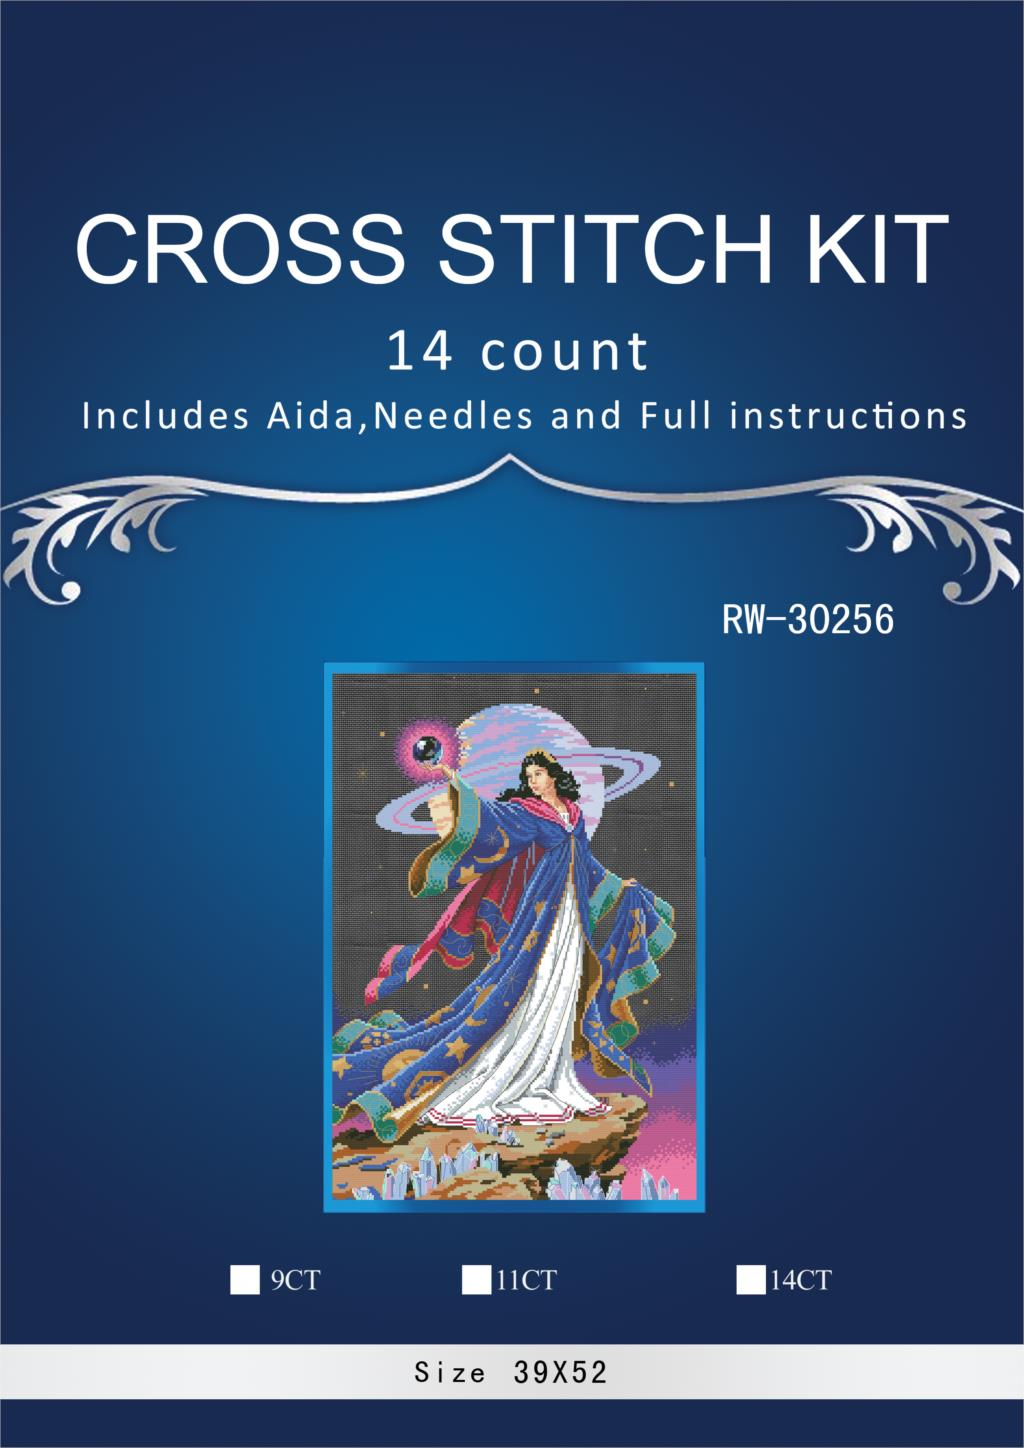 Beautiful Lovely Counted Cross Stitch Kit Alluring Sorceress Earth Universe Fairy at Night dim 72425 41X54CM, 14CT image